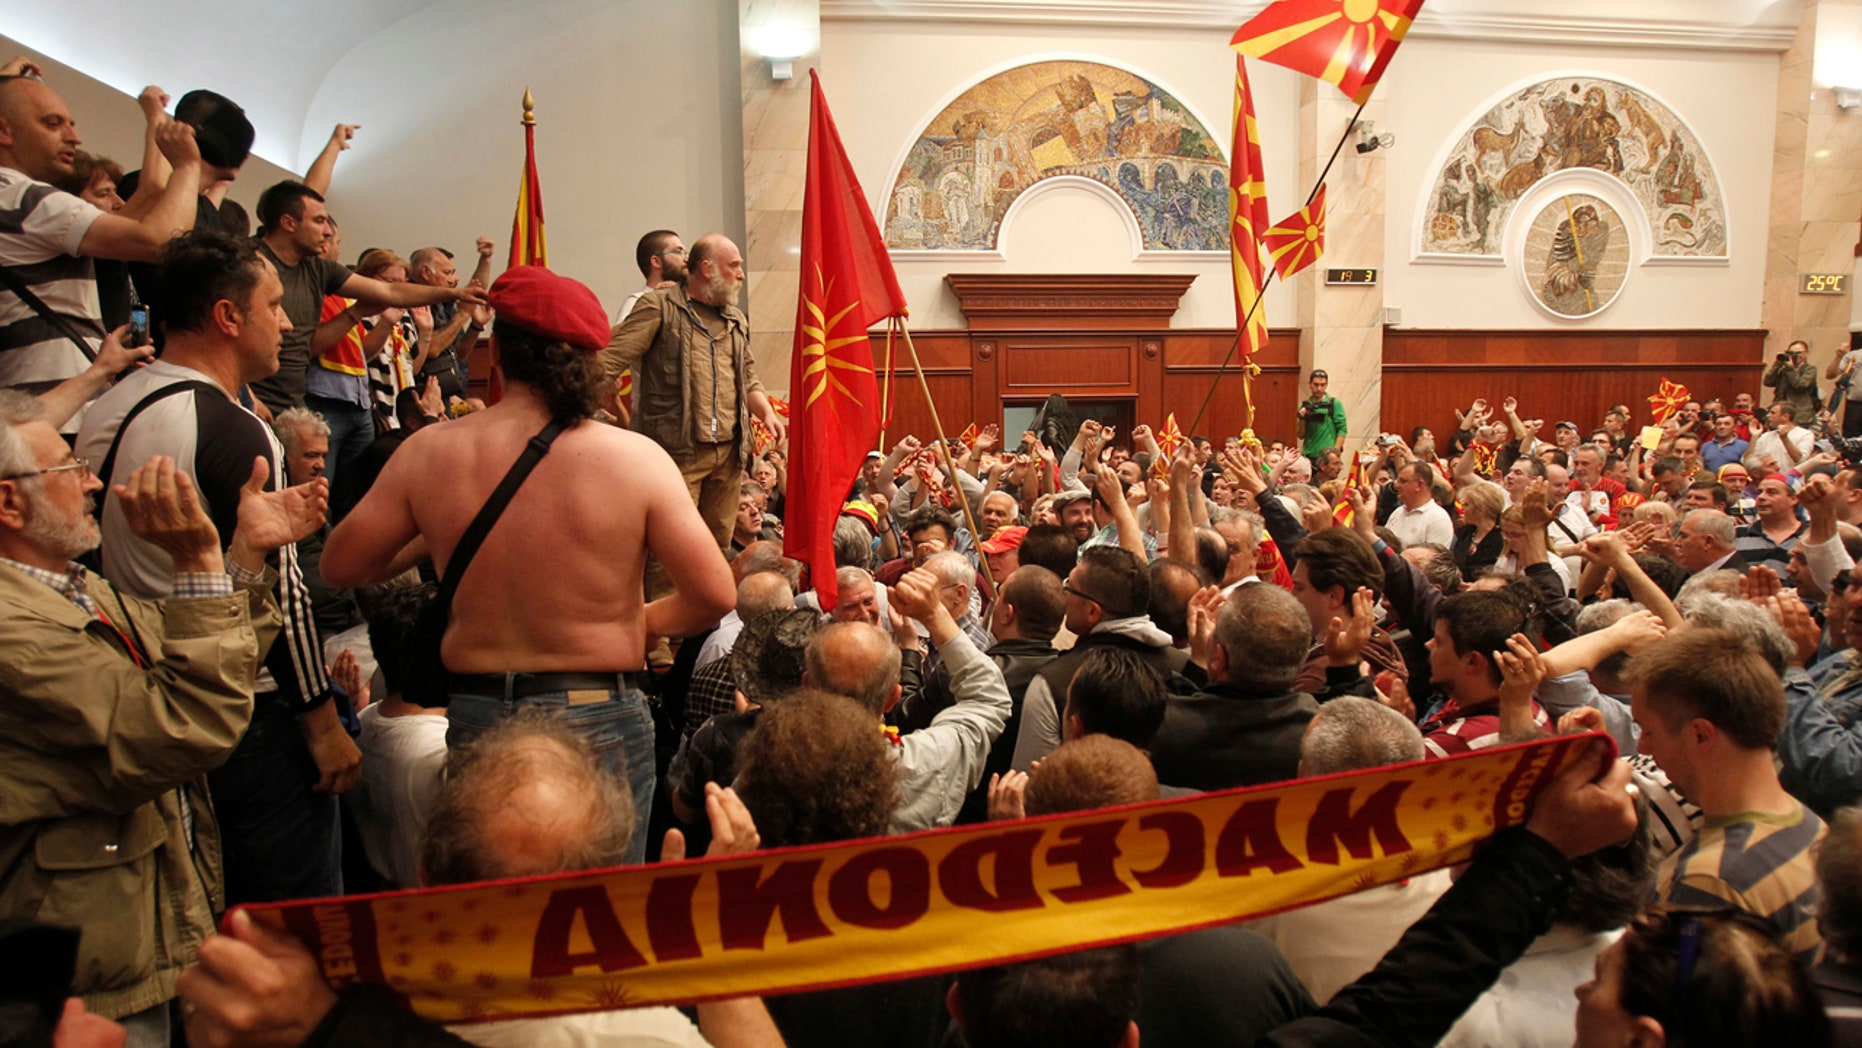 Protesters enter into the parliament building in Skopje, Macedonia, Thursday, April 27, 2017.